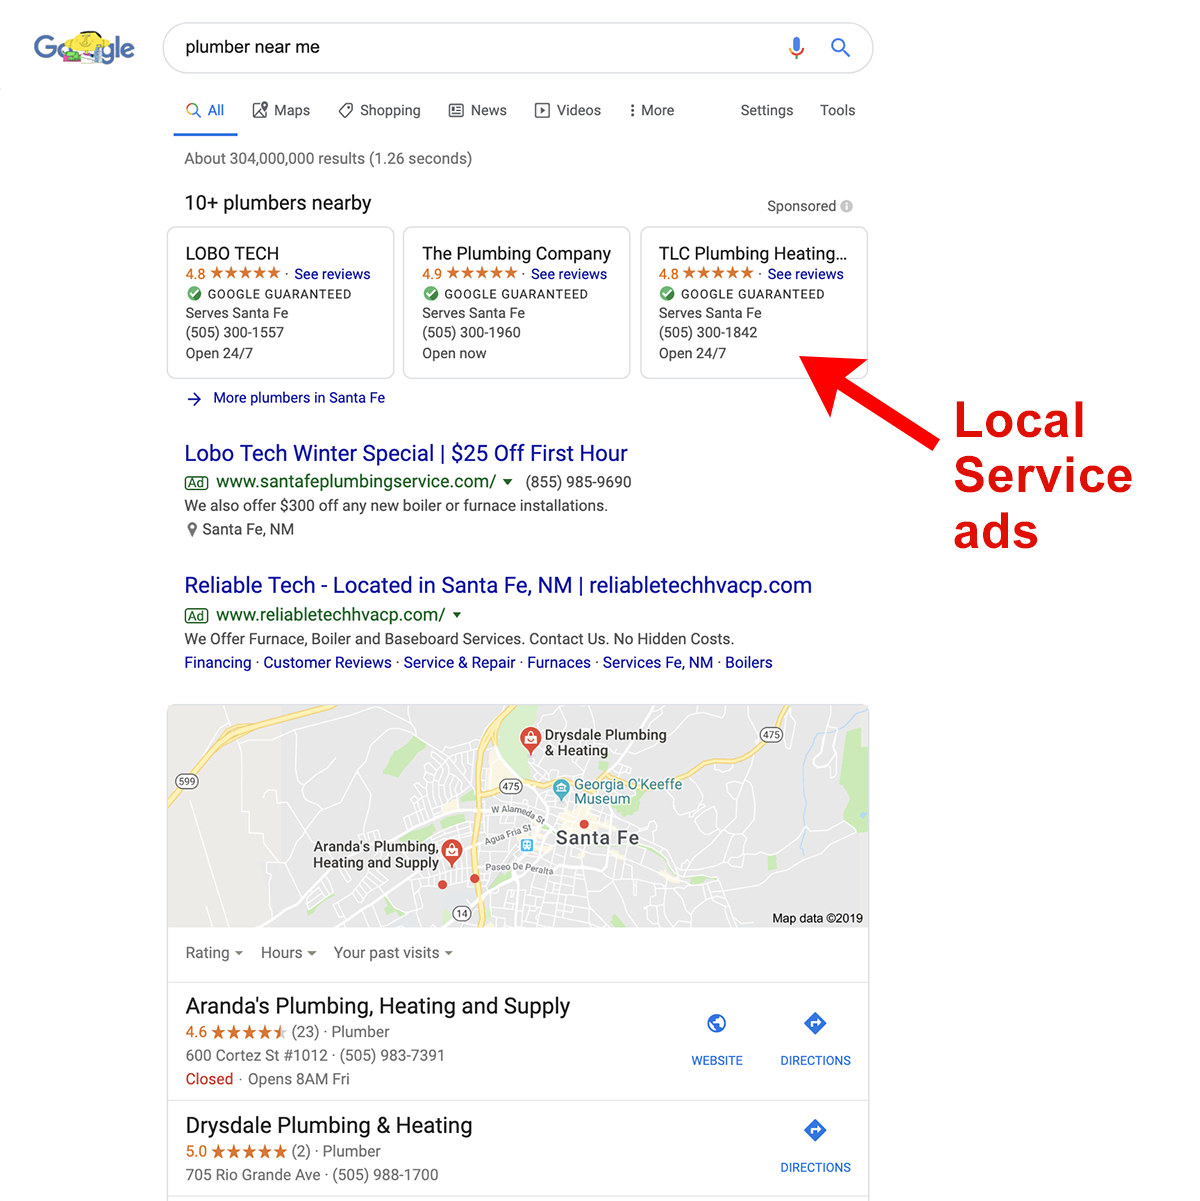 Local Service Ads are one way to use Google Ads for Local Businesses